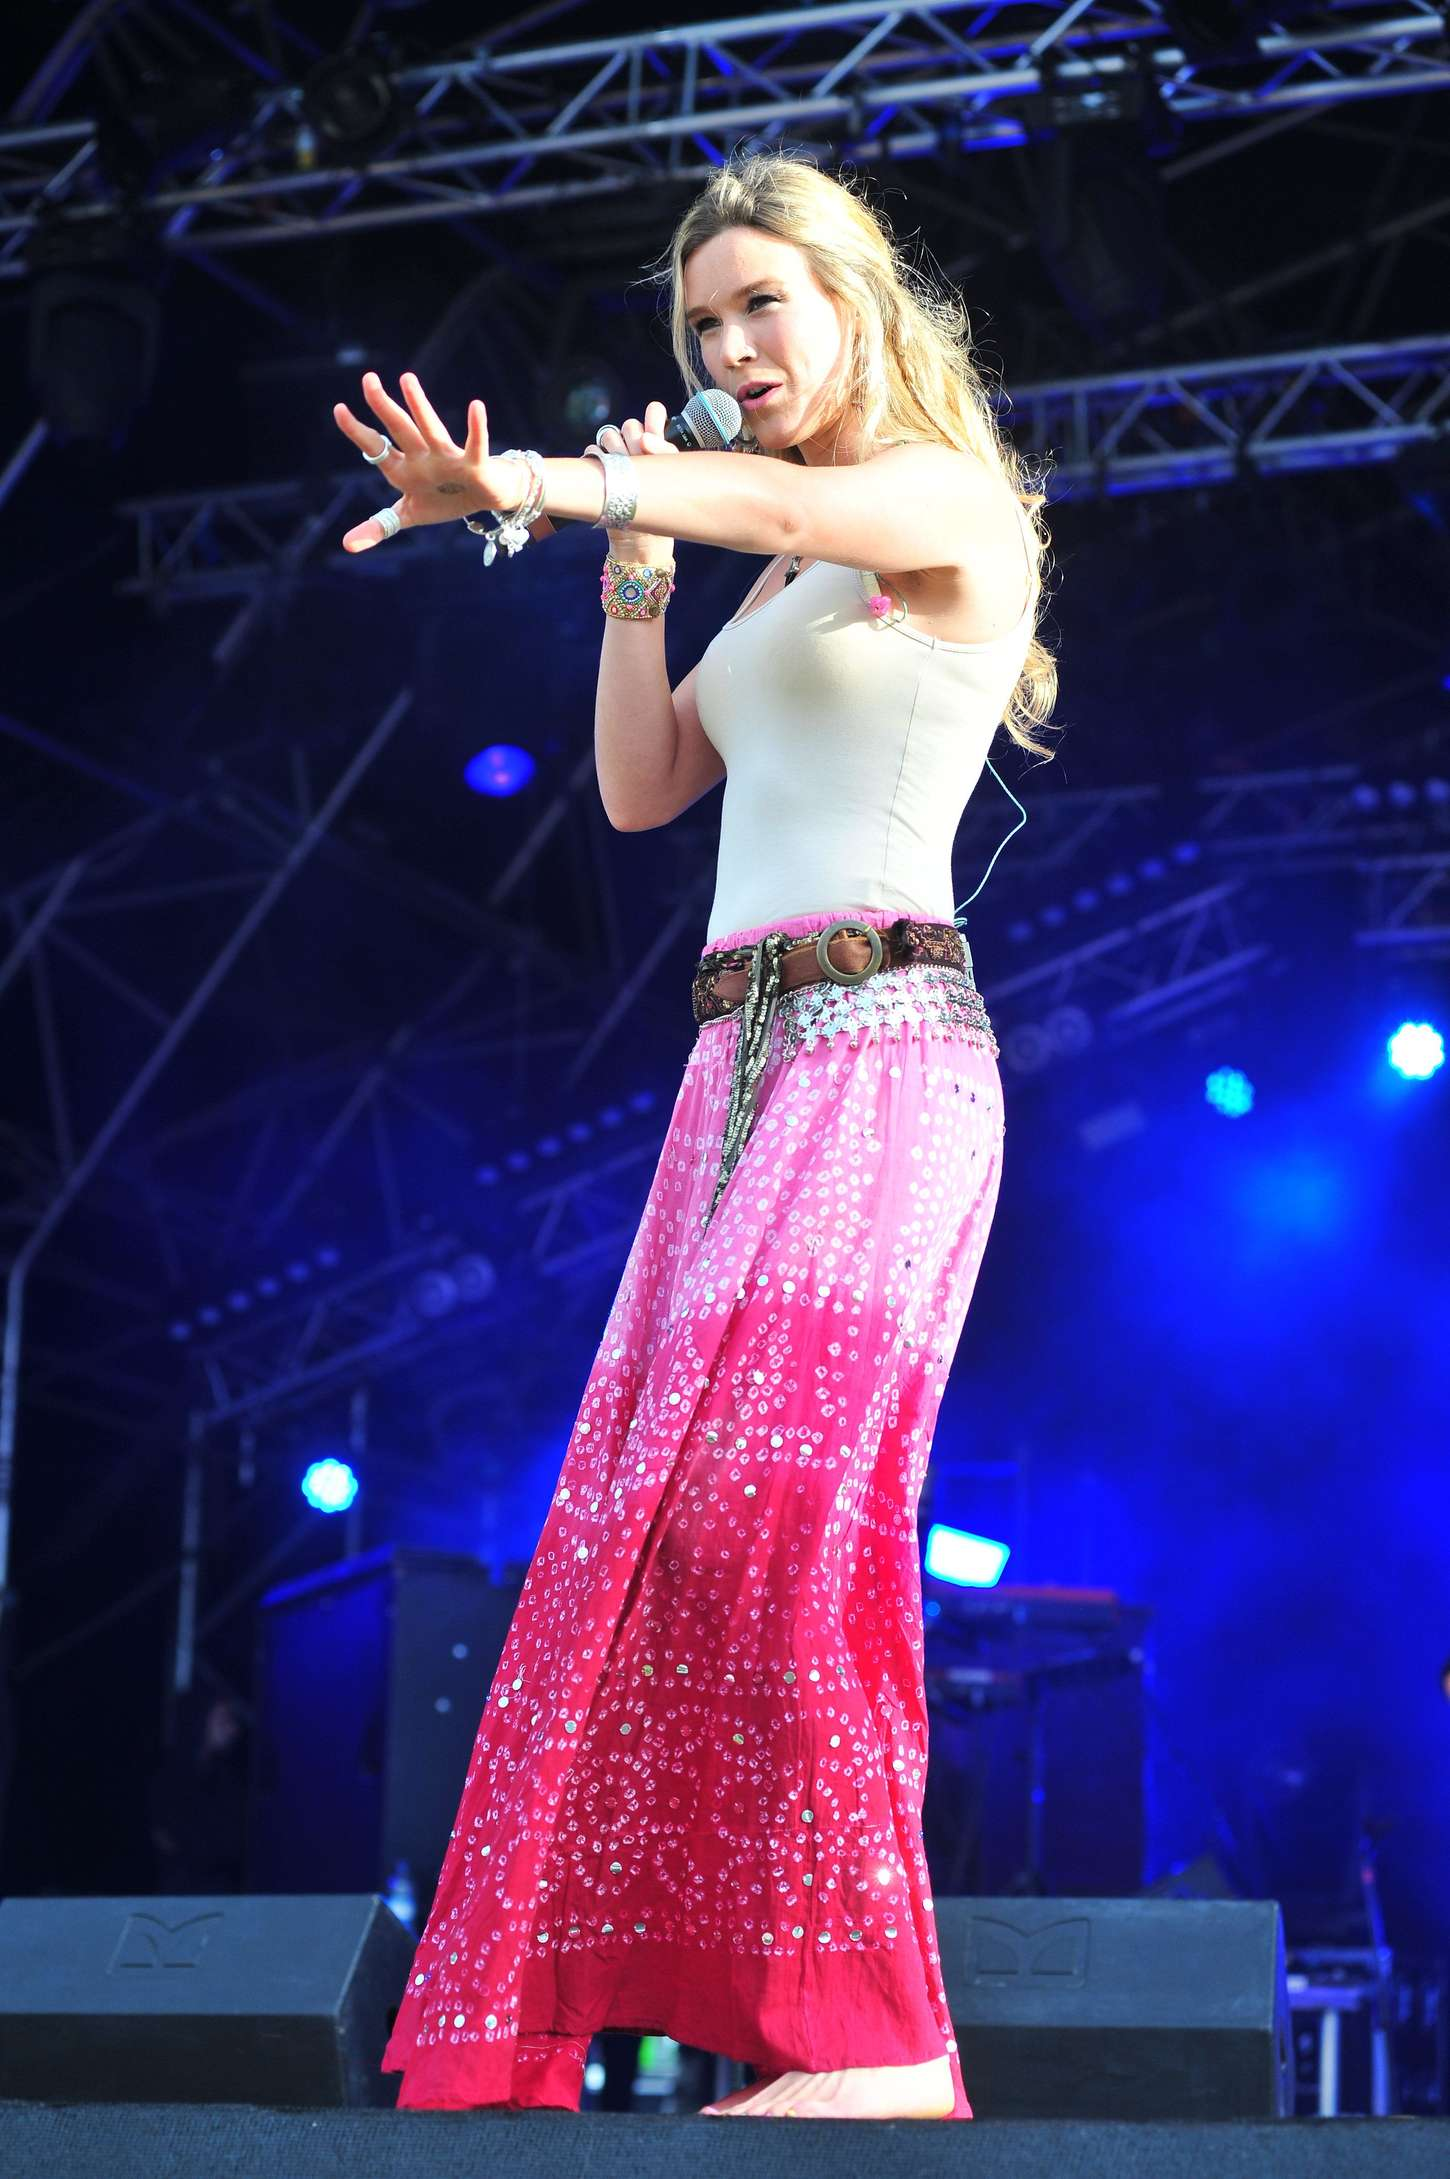 Joss Stone Performs at CarFest North in Cheshire